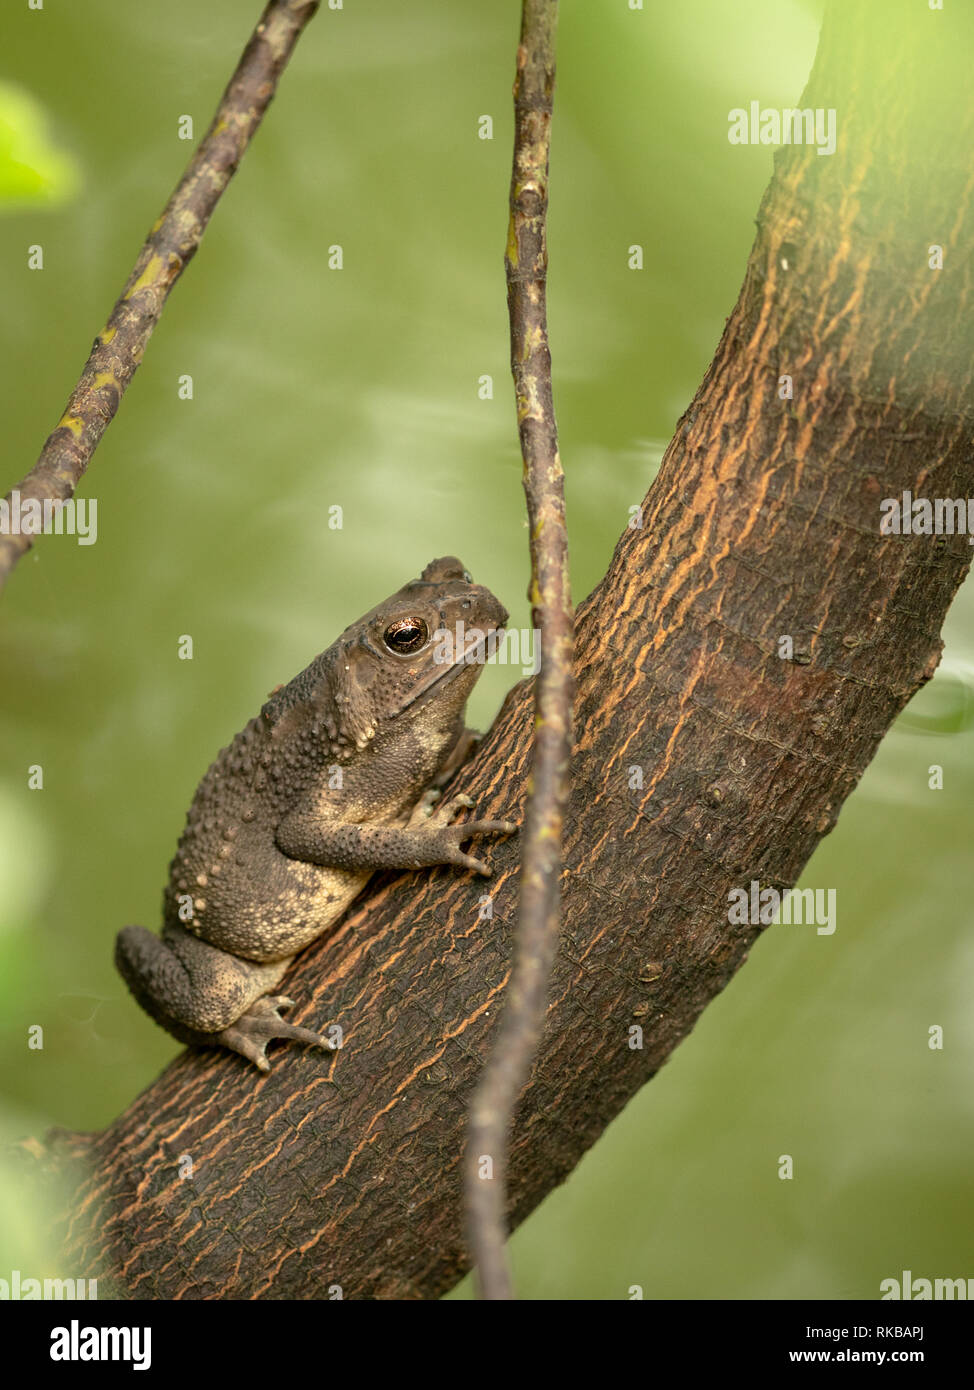 Asian common toad, Black-spined toad, Duttaphrynus melanostictus sitting on tree. Vertical. - Stock Image